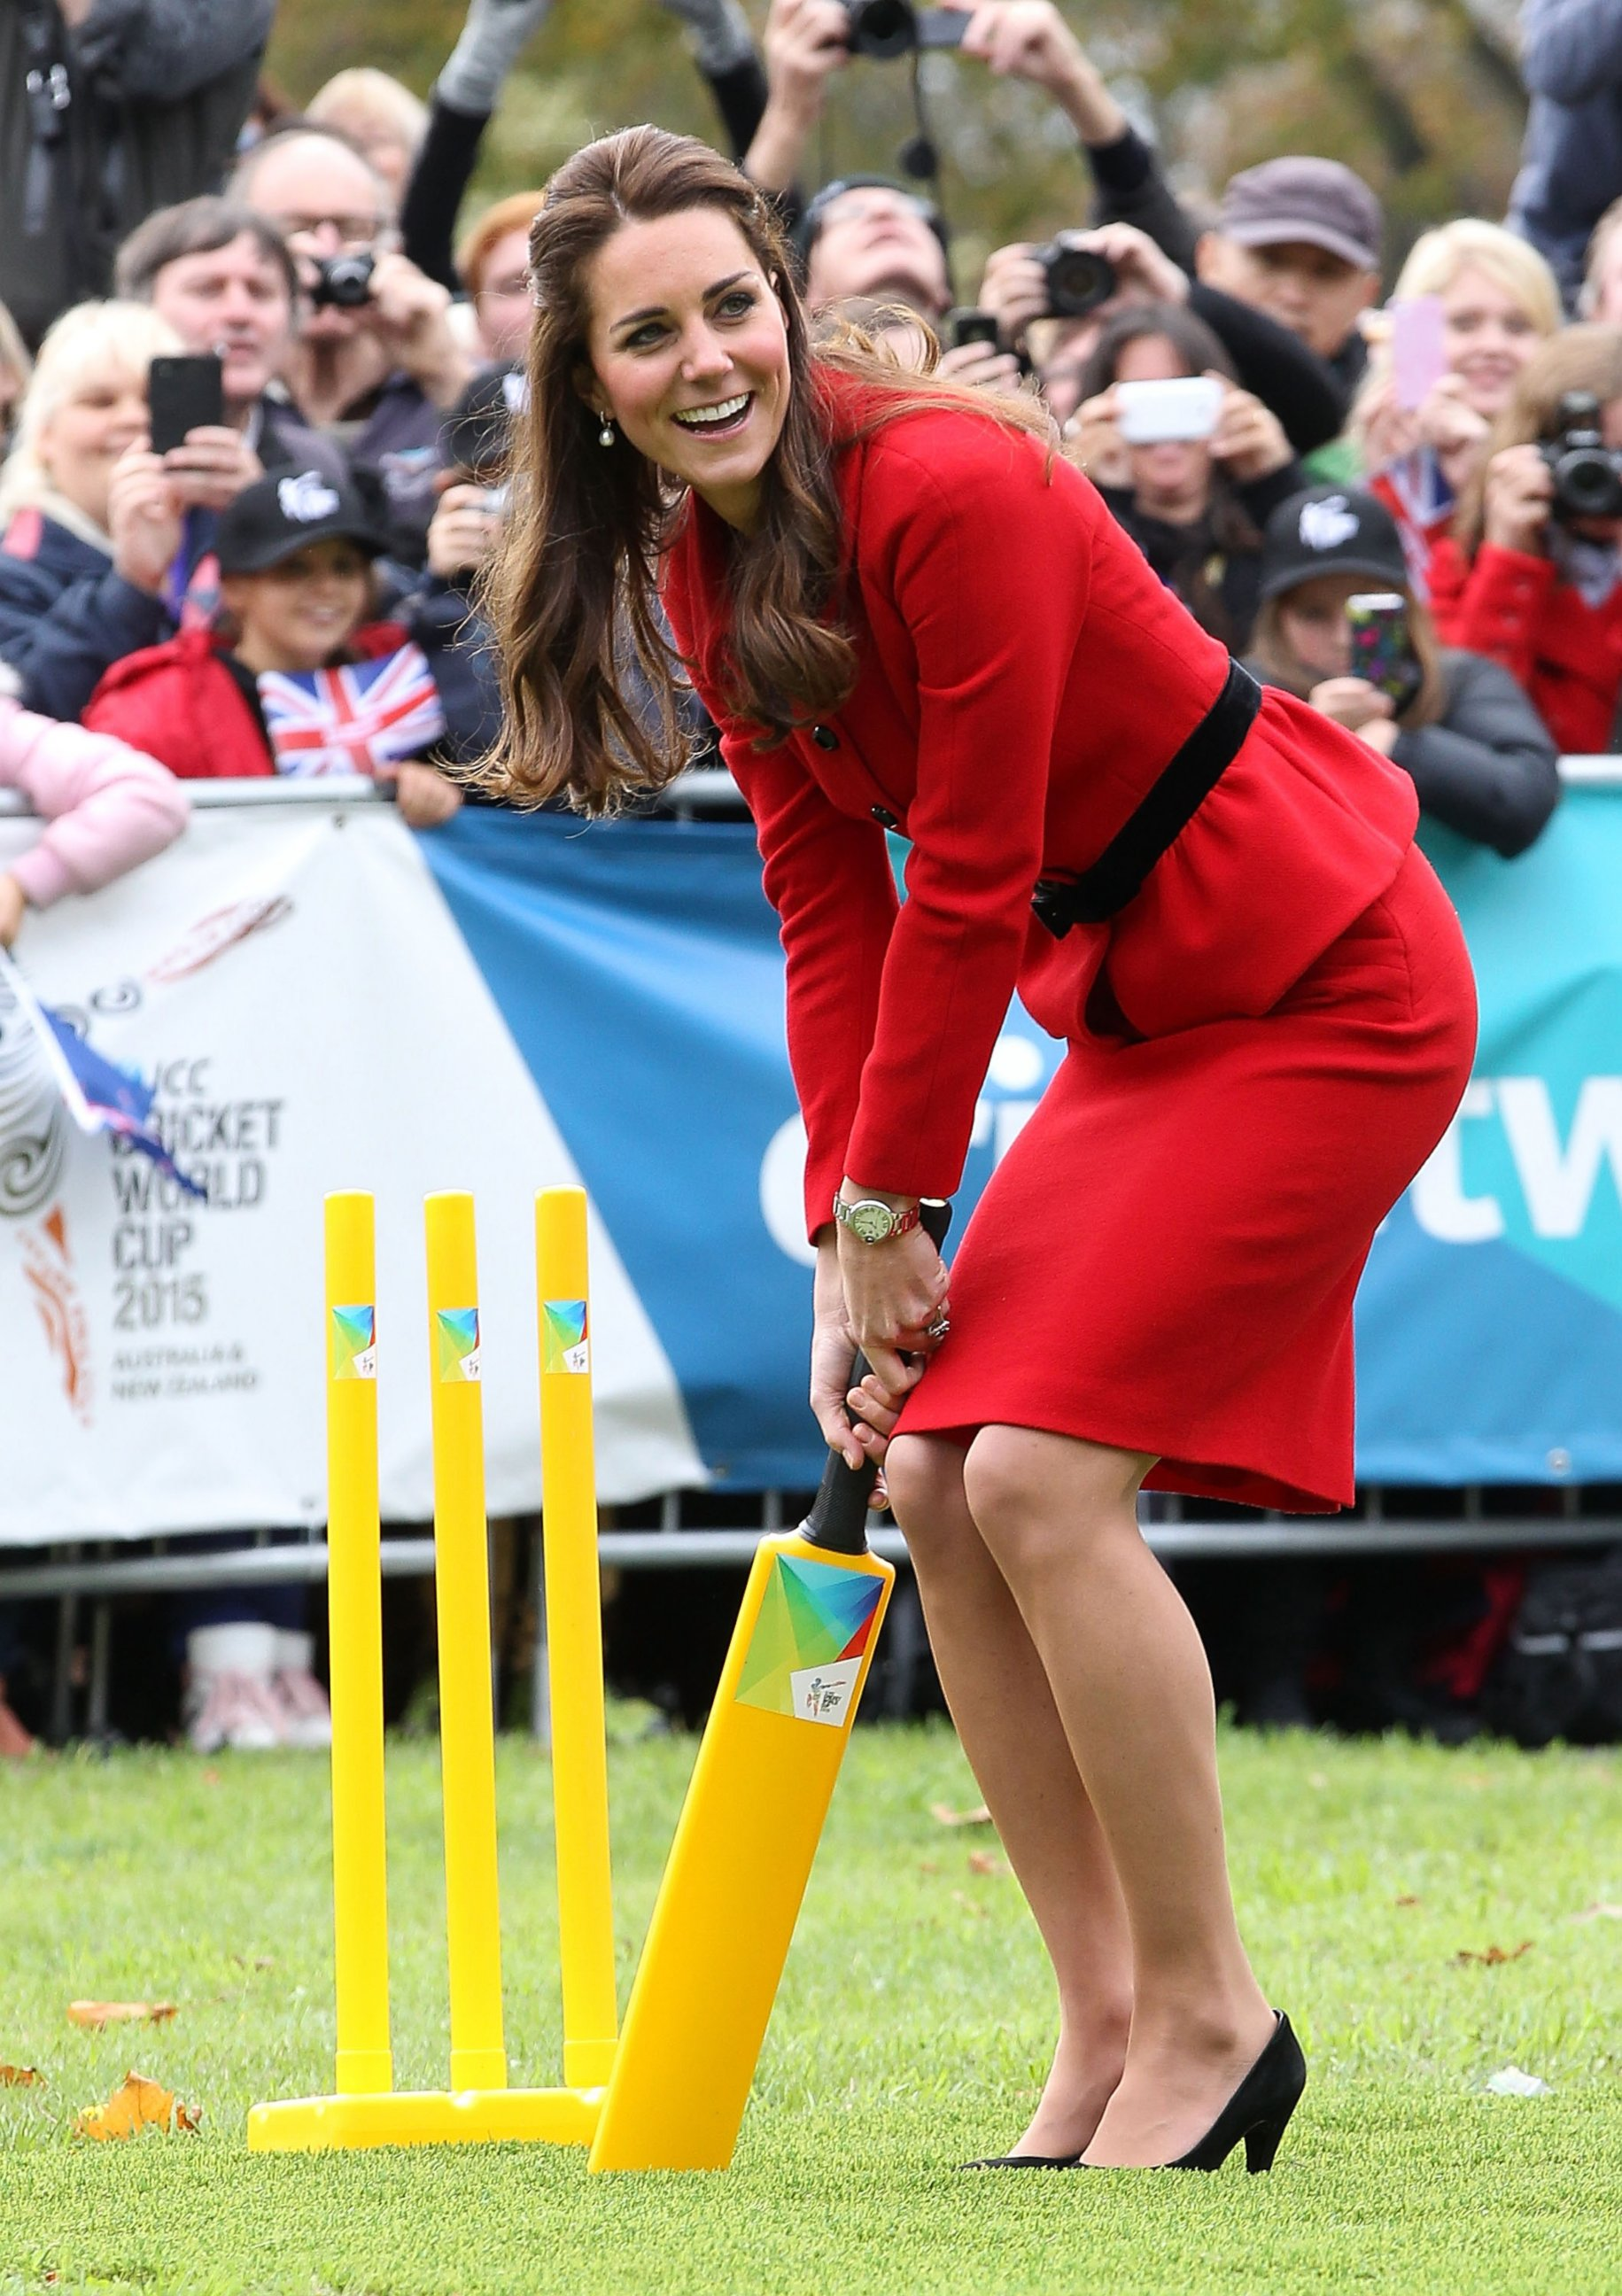 See Kate Middleton Play Cricket in Heels